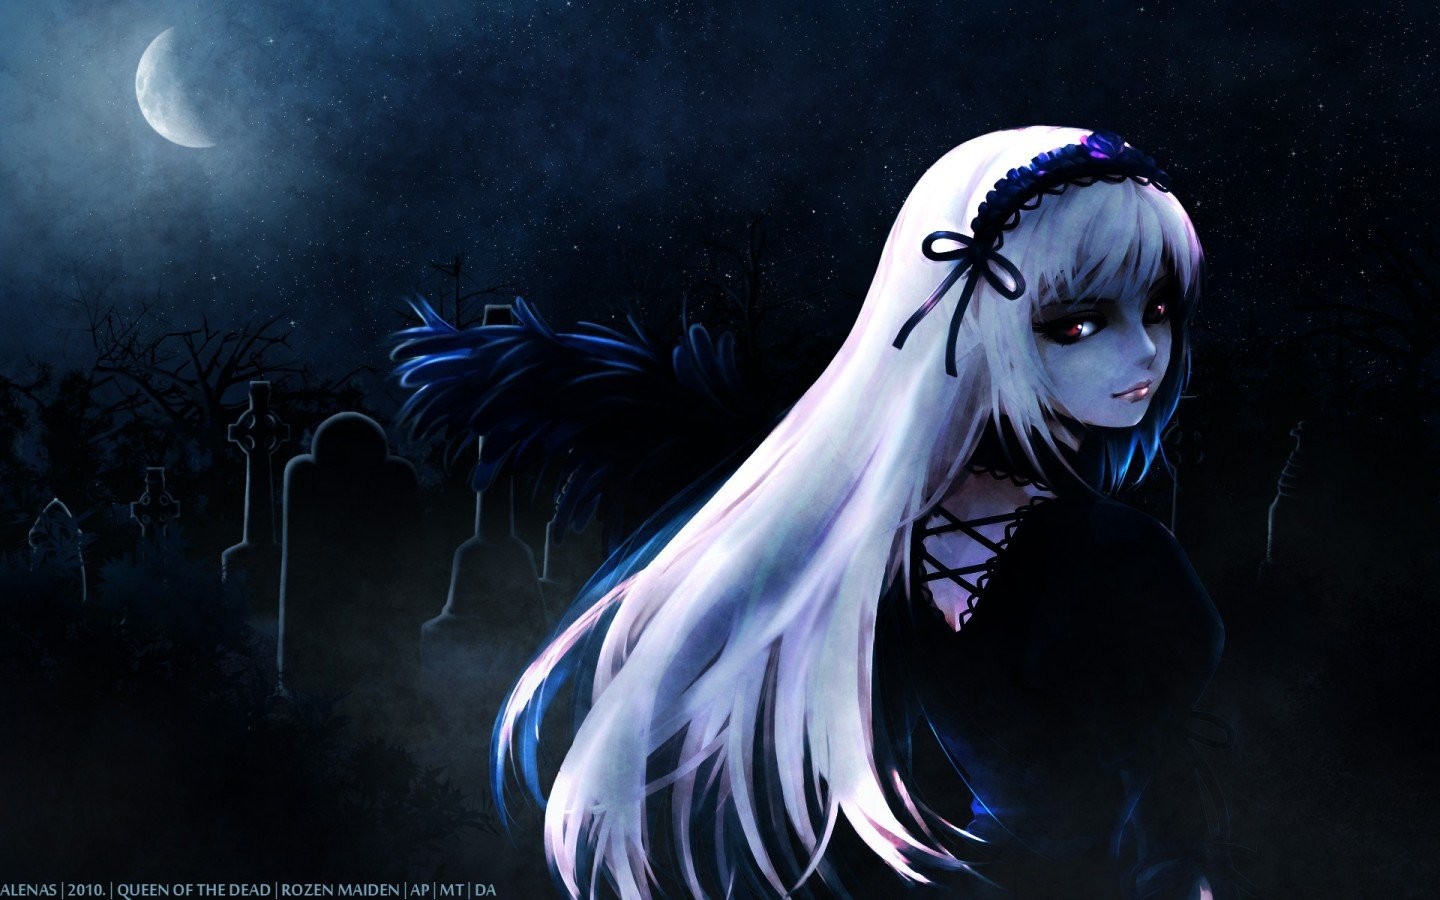 Dark girl wallpapers for desktop wallpapersafari - Anime girl full hd ...